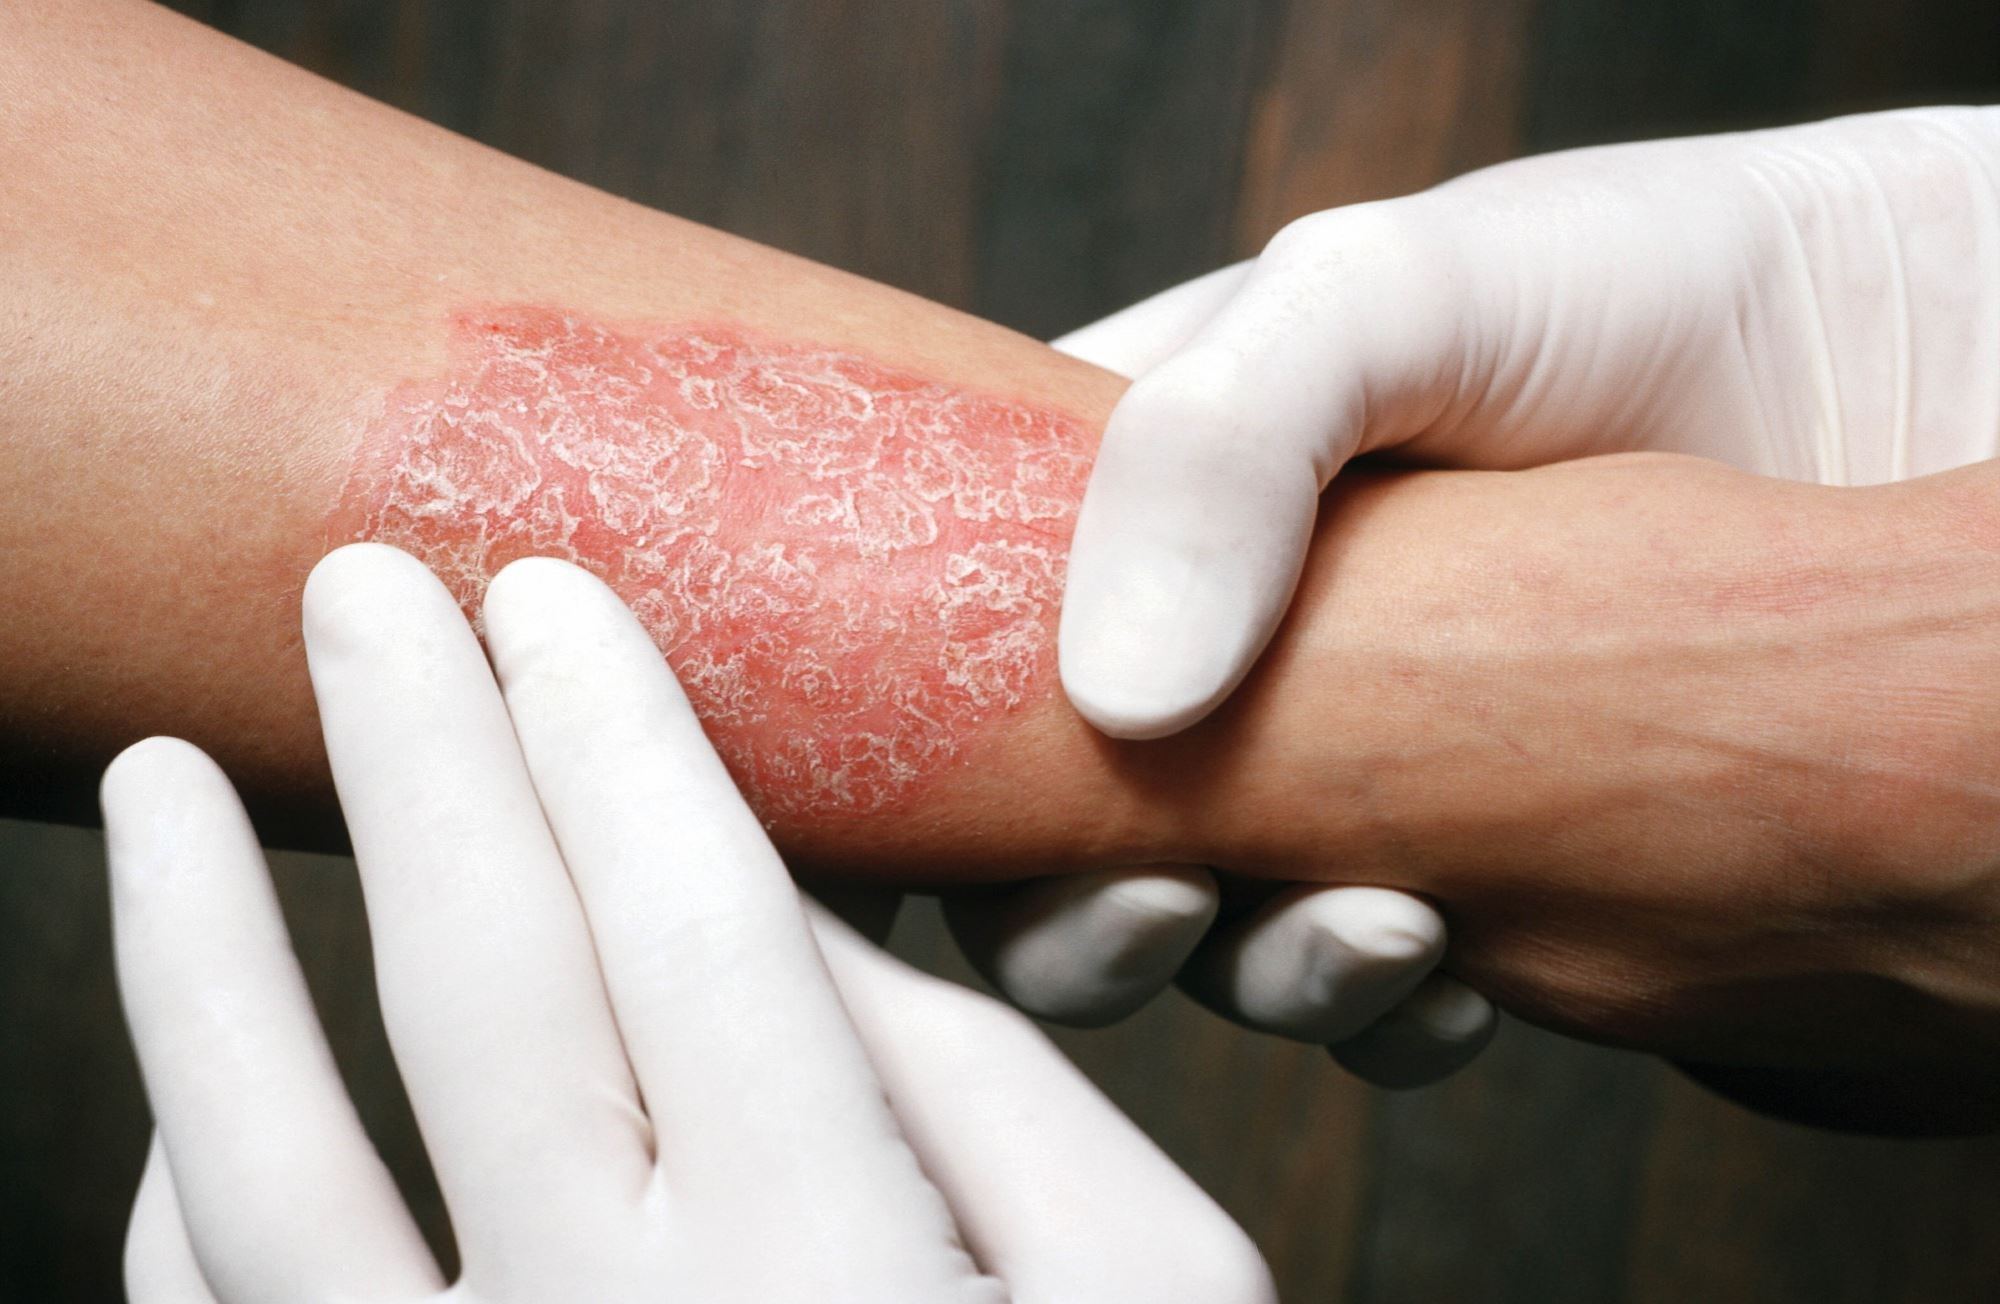 Researchers found significant associations between psoriasis and Crohn's disease and between psoriasis and ulcerative colitis.